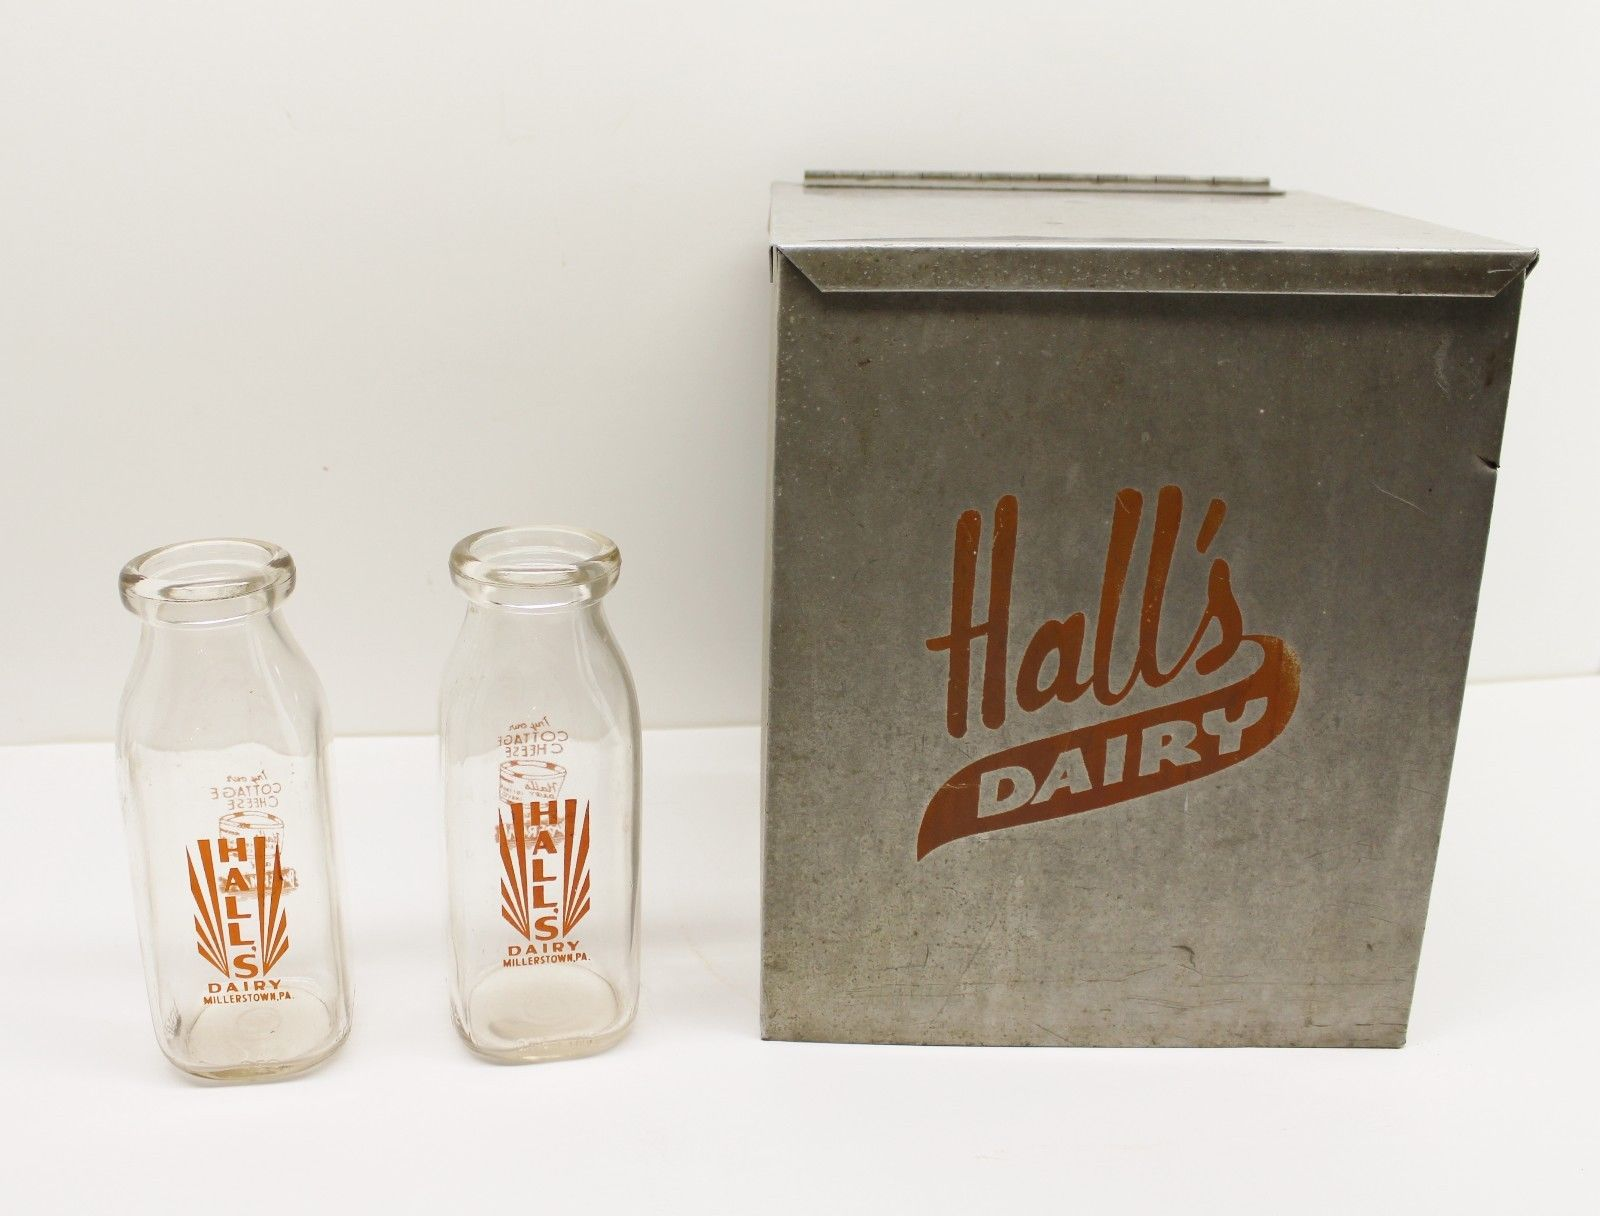 During the day of the milkman, fresh dairy products would be placed in a box like this that was made of stainless steel or wood. Daily deliveries were necessary due to lack of reliable refrigeration. (Courtesy eBay)